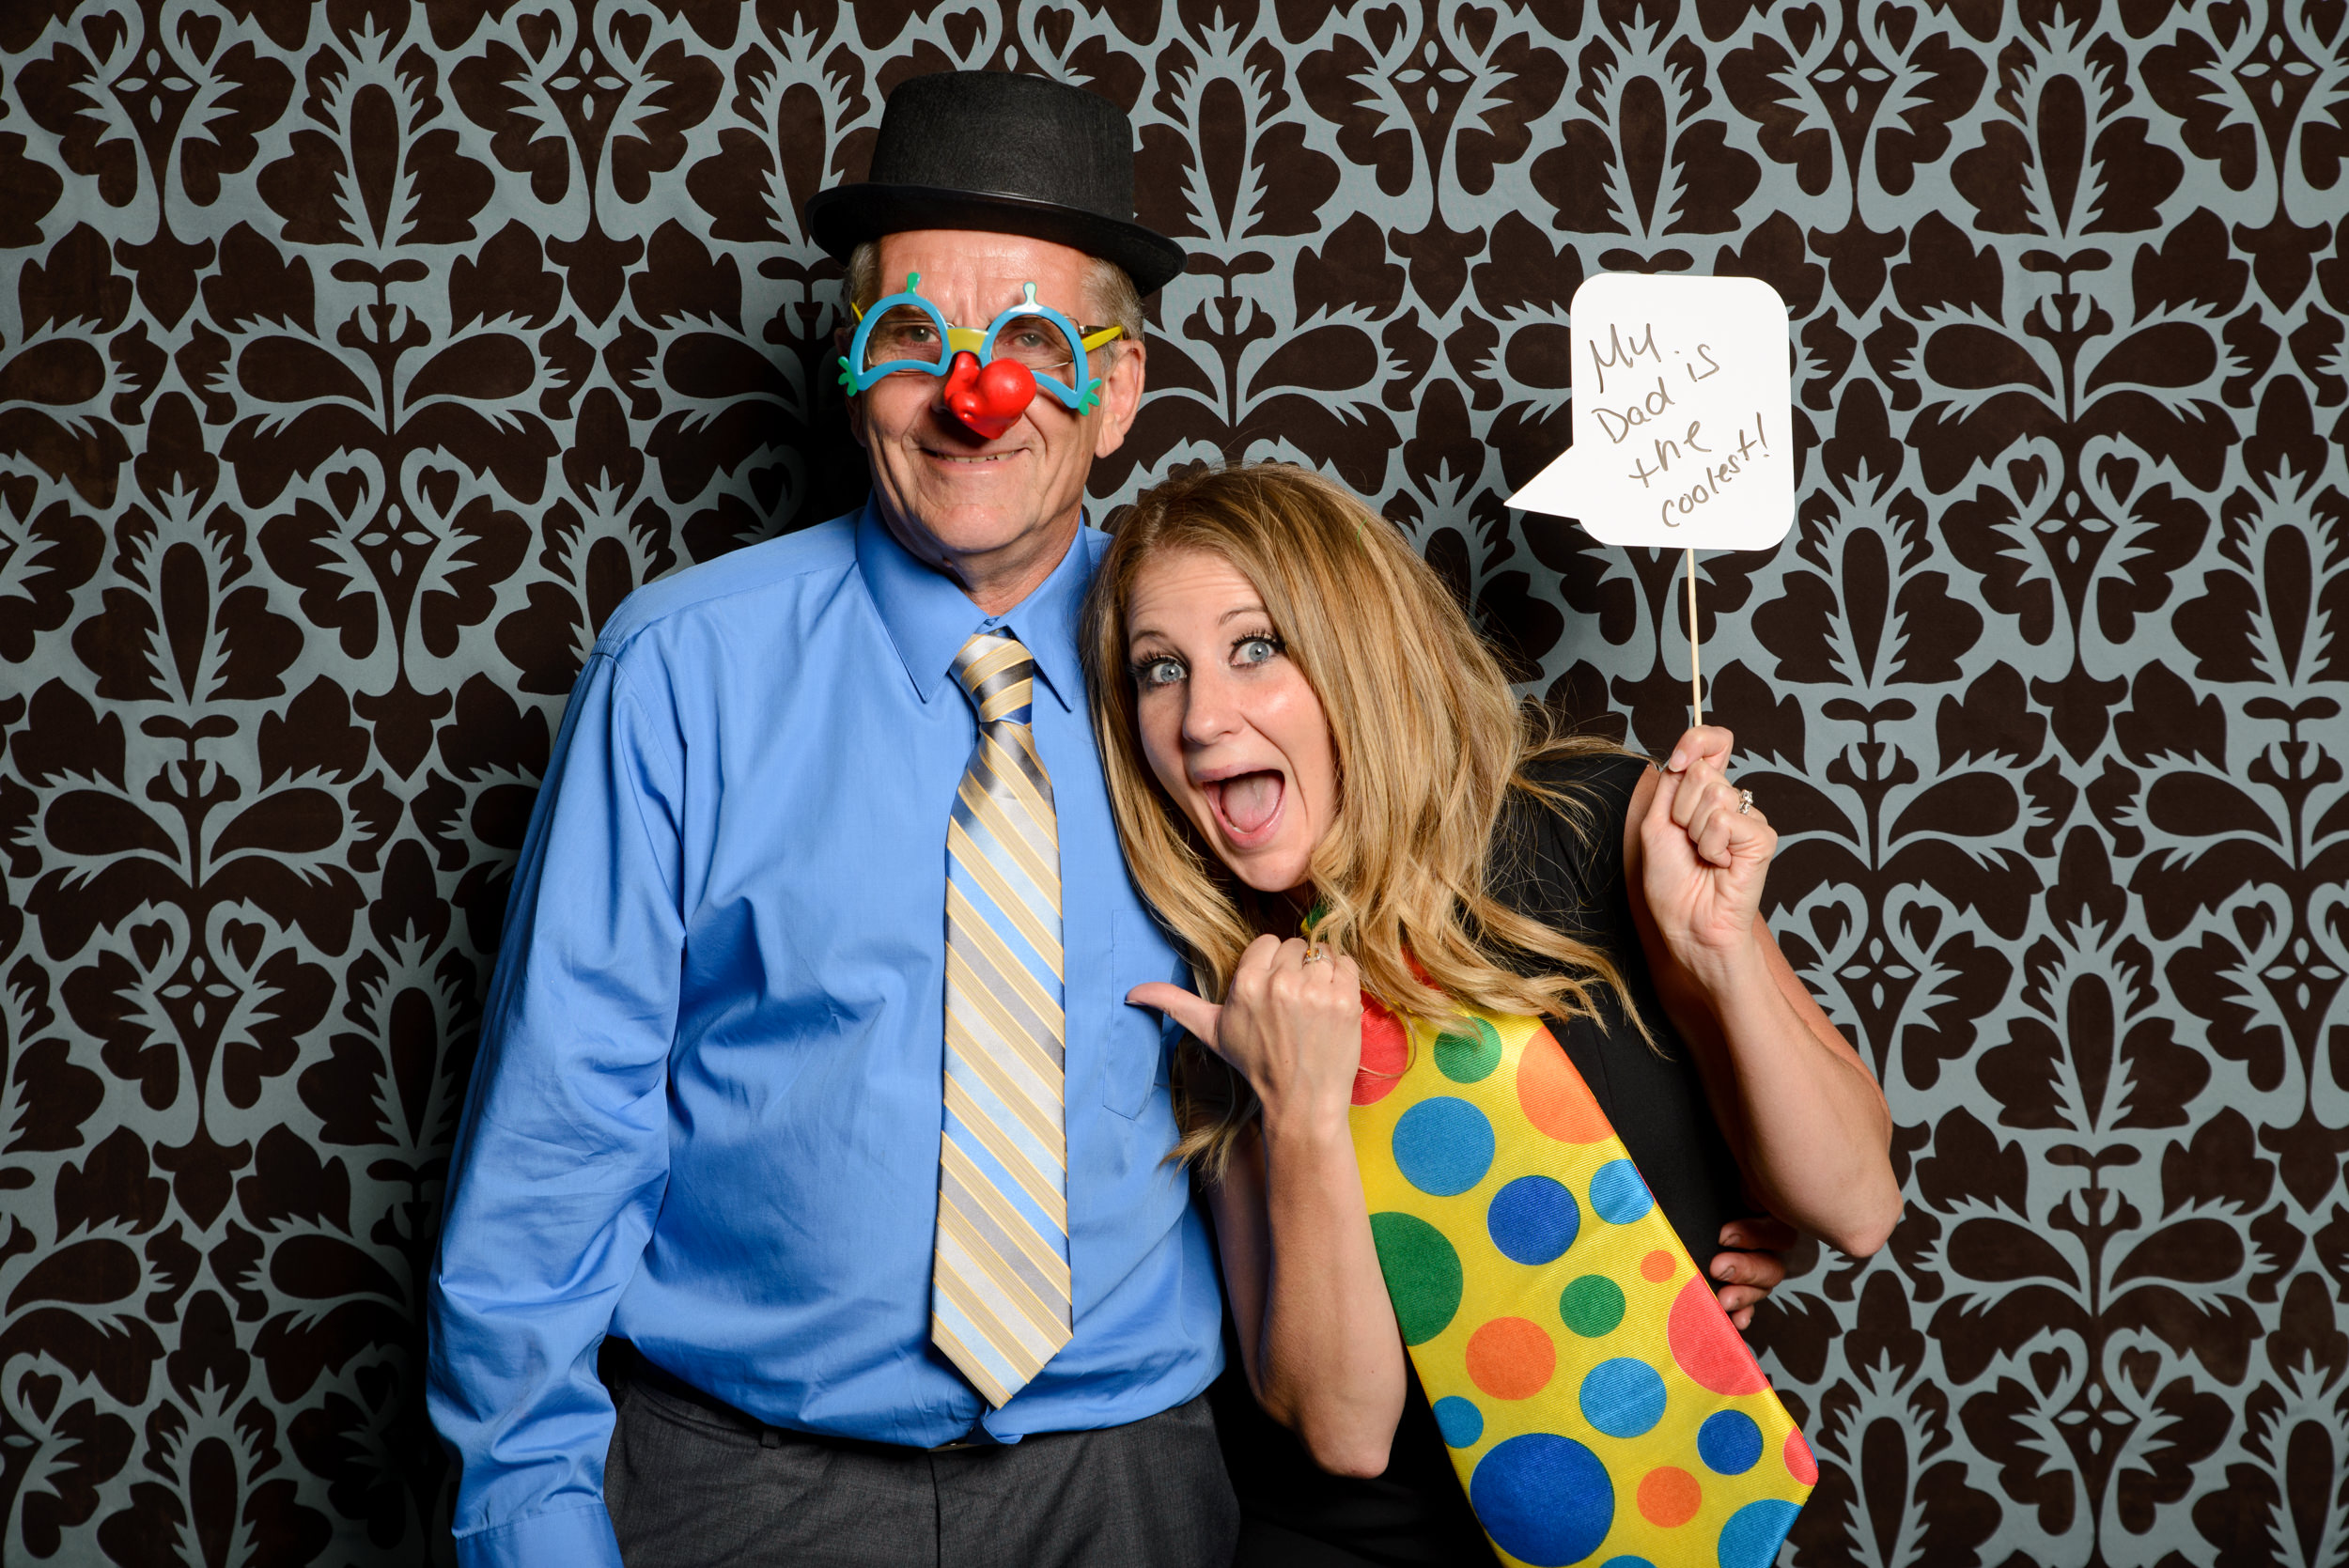 philadelphia-photo-booth-15